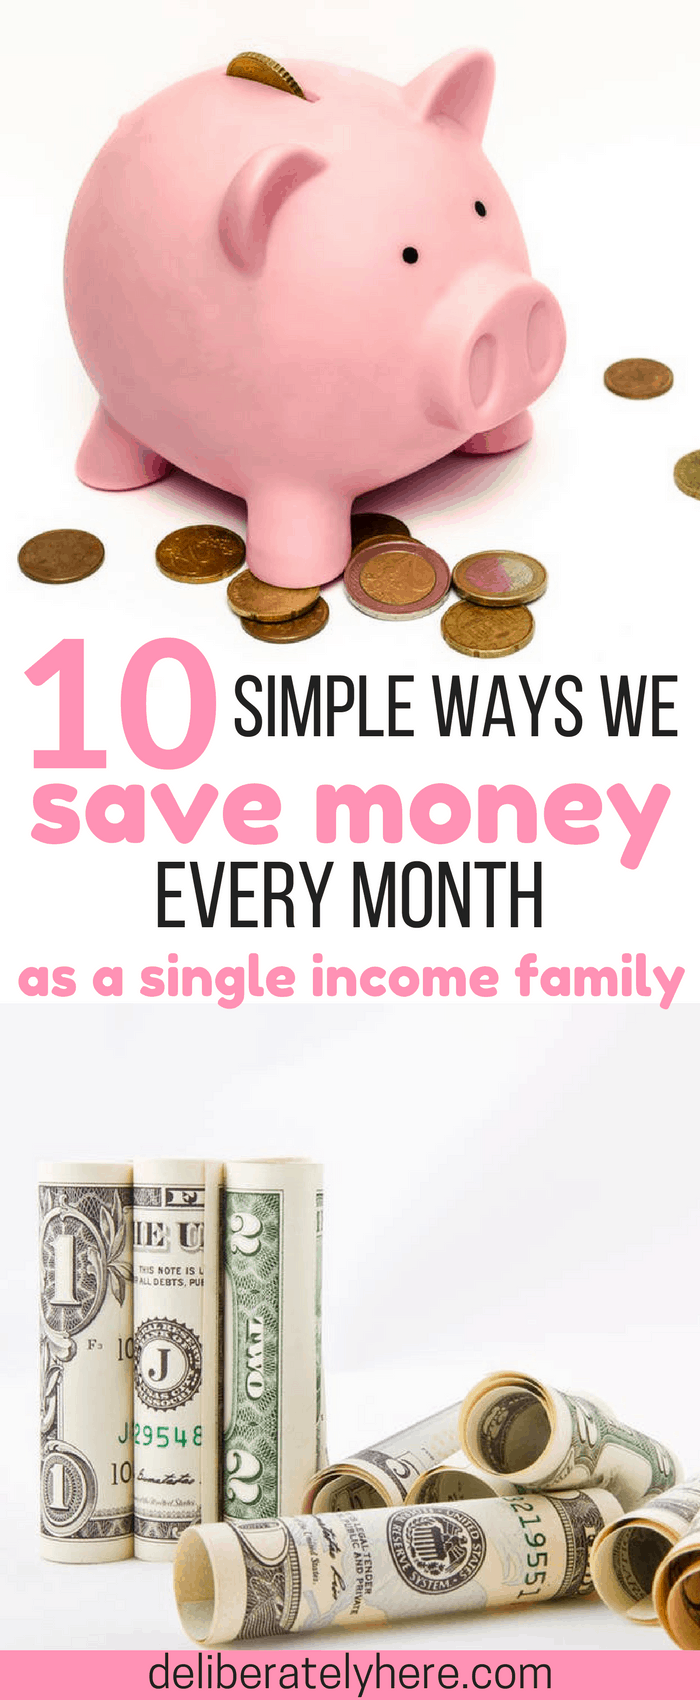 10 Simple & Effective Ways We Save Money Every Month Even as a Single Income Family